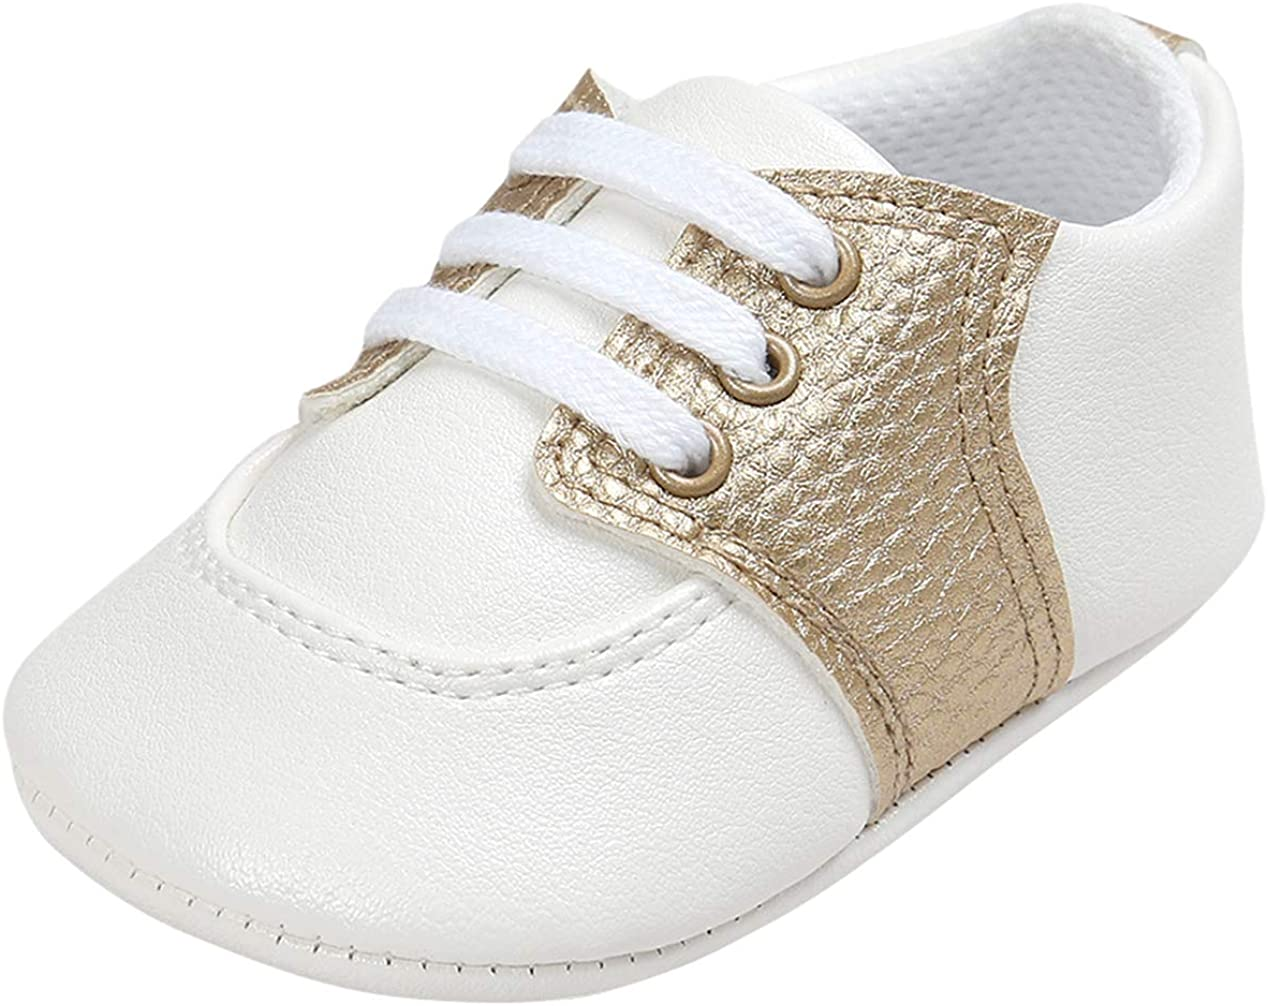 La Vogue Newborn Baby Prewalker Sneakers Soft Sole Moccasins Non-Slip PU Leather First Walking Shoes